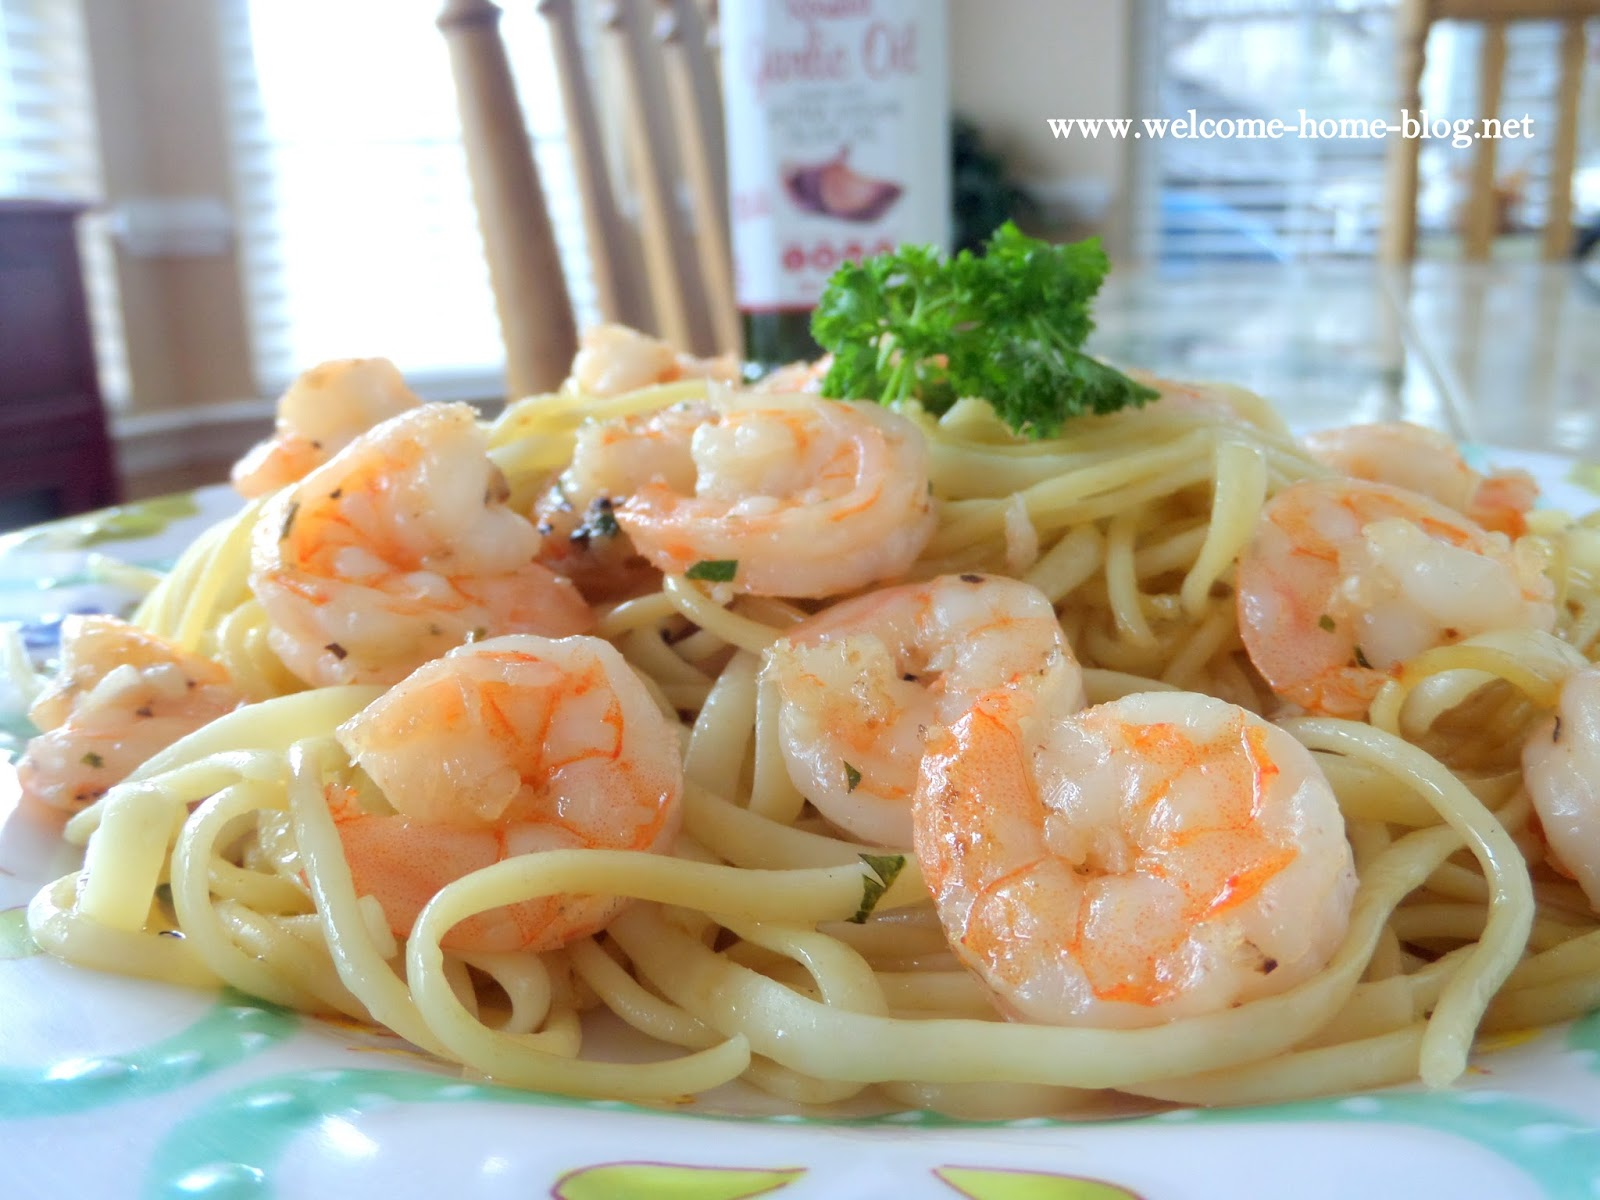 Welcome Home Blog: Shrimp Scampi Over Pasta